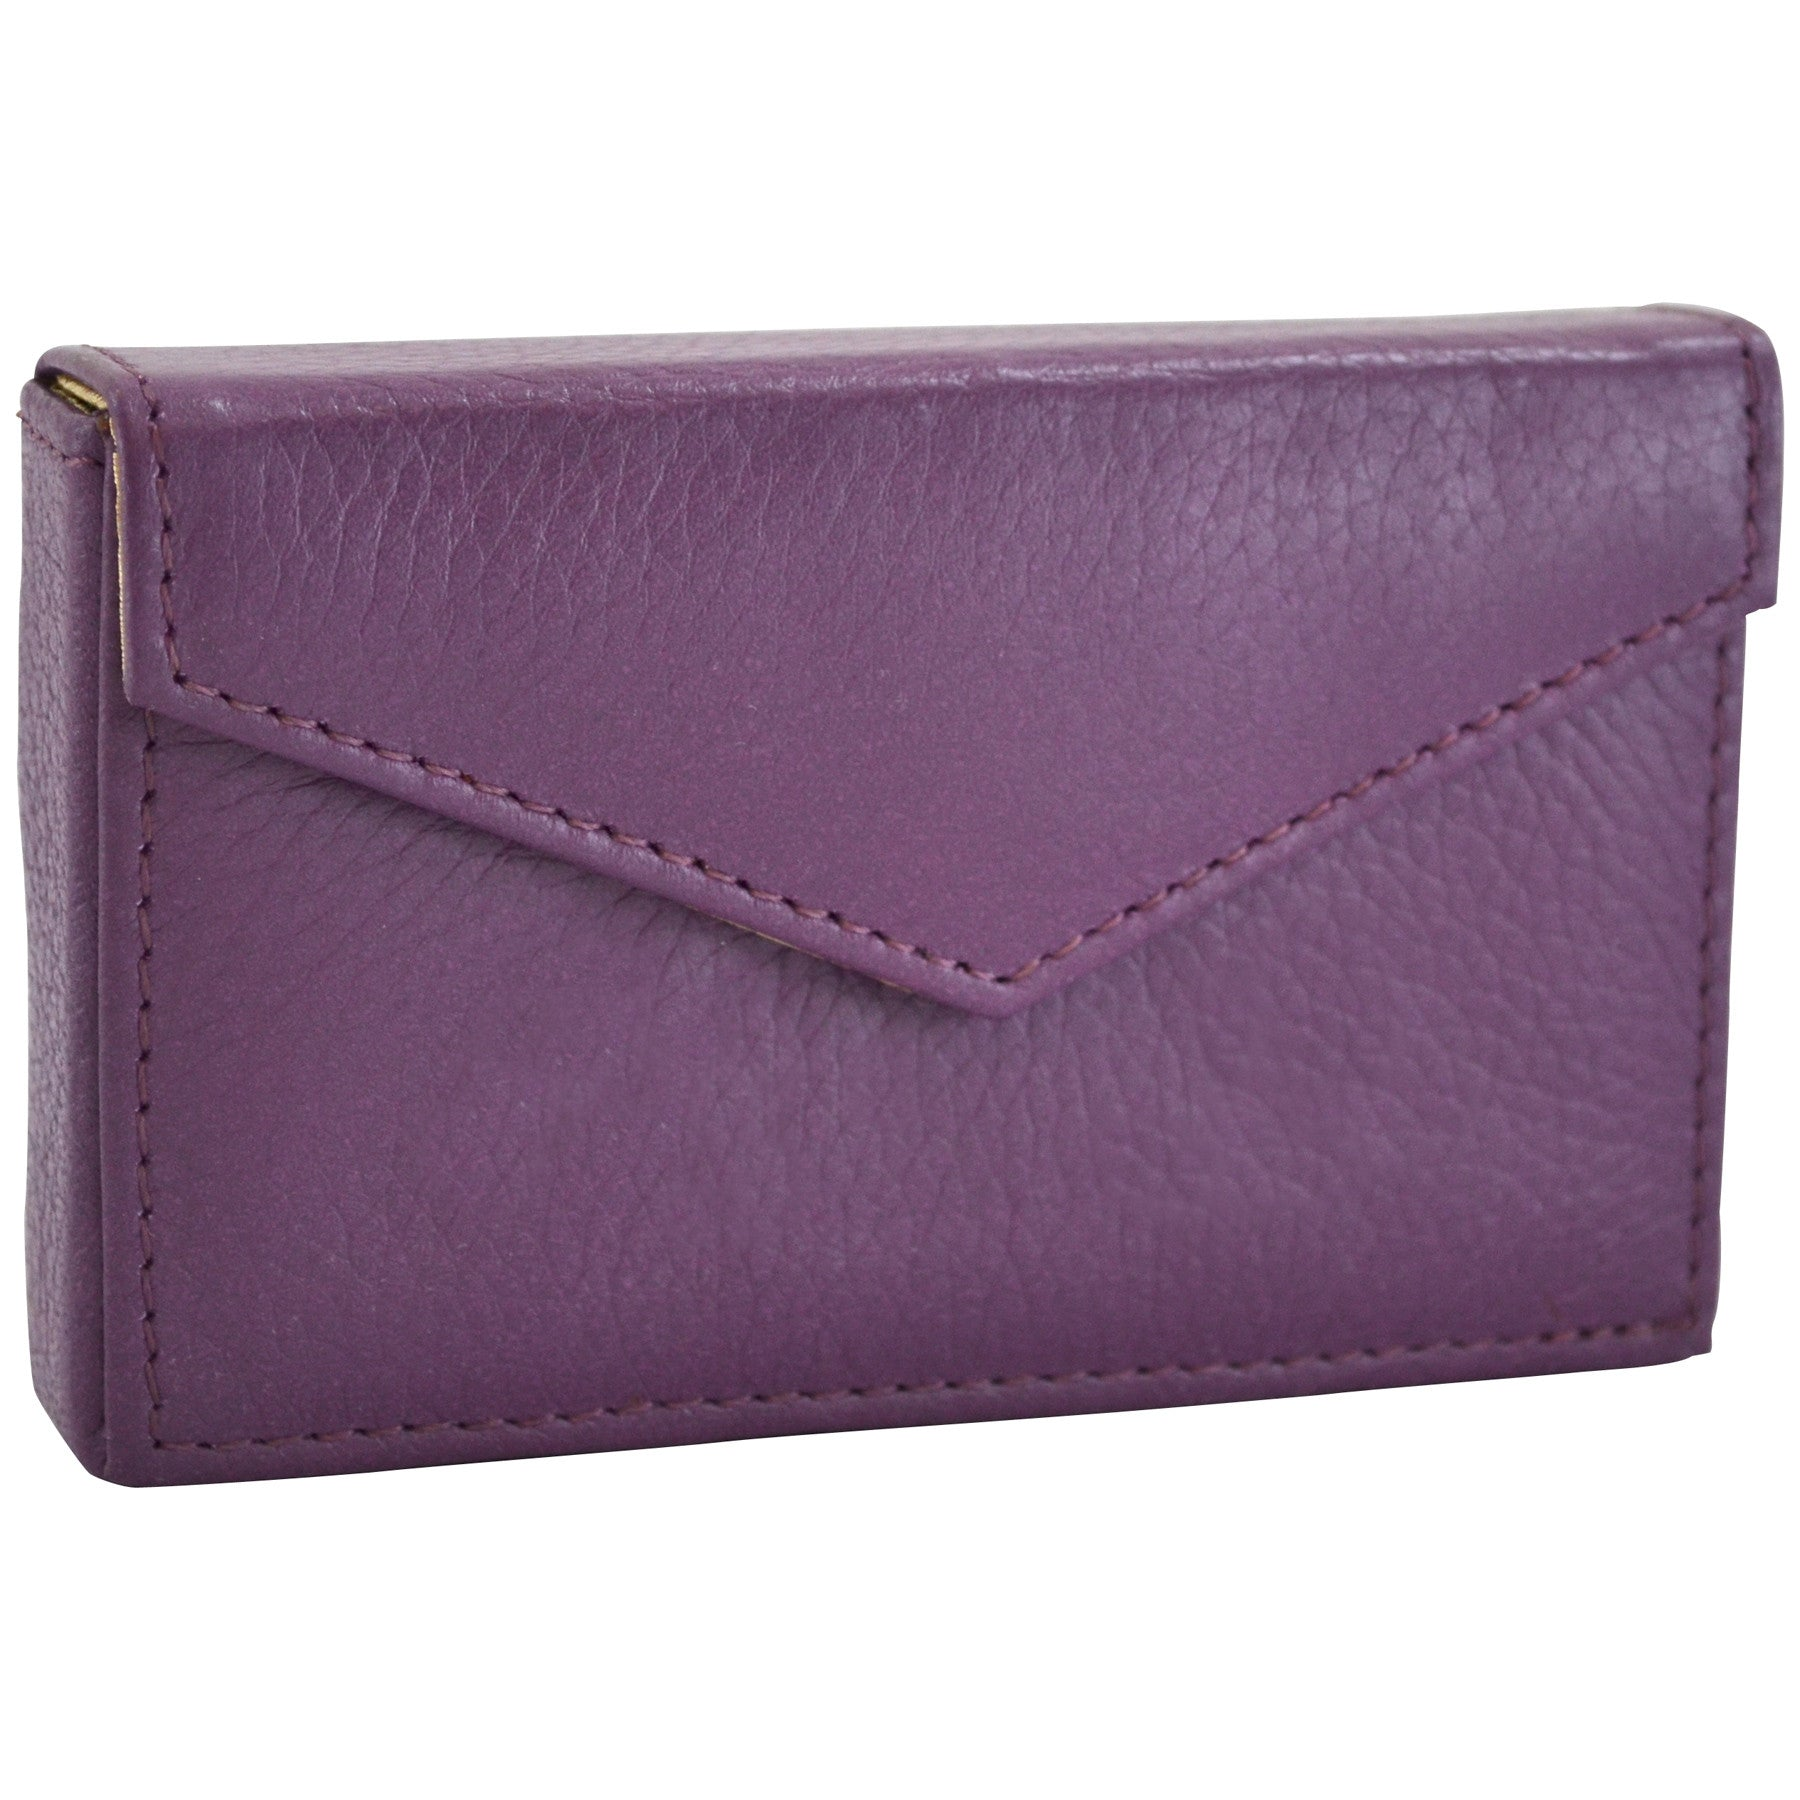 Alicia Klein leather card holder, purple